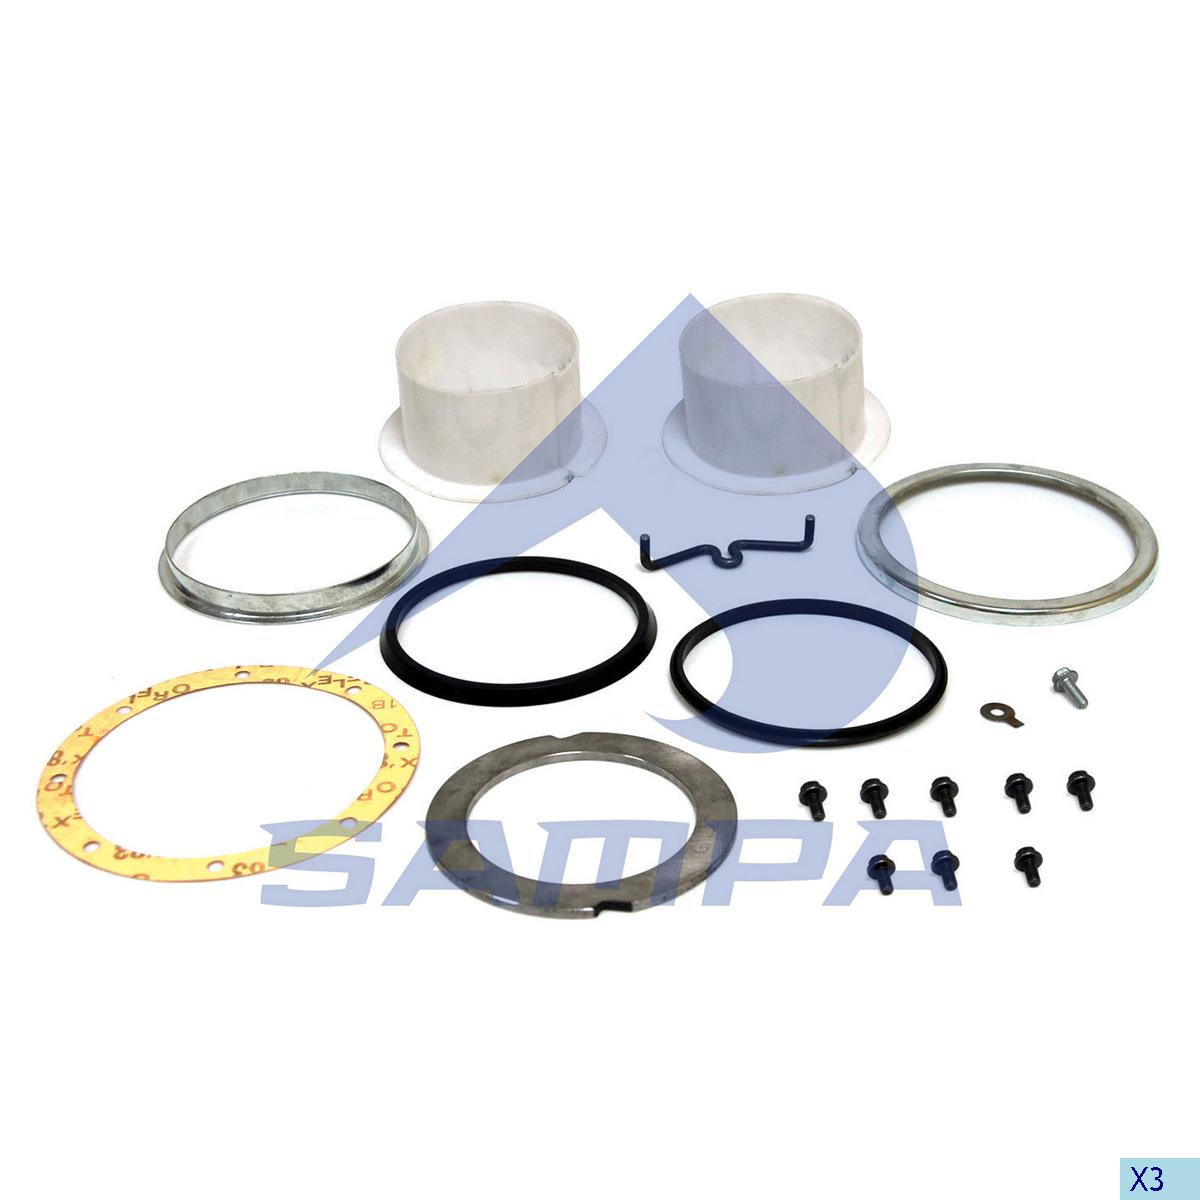 Repair Kit, Bogie Suspension, Volvo, Suspension